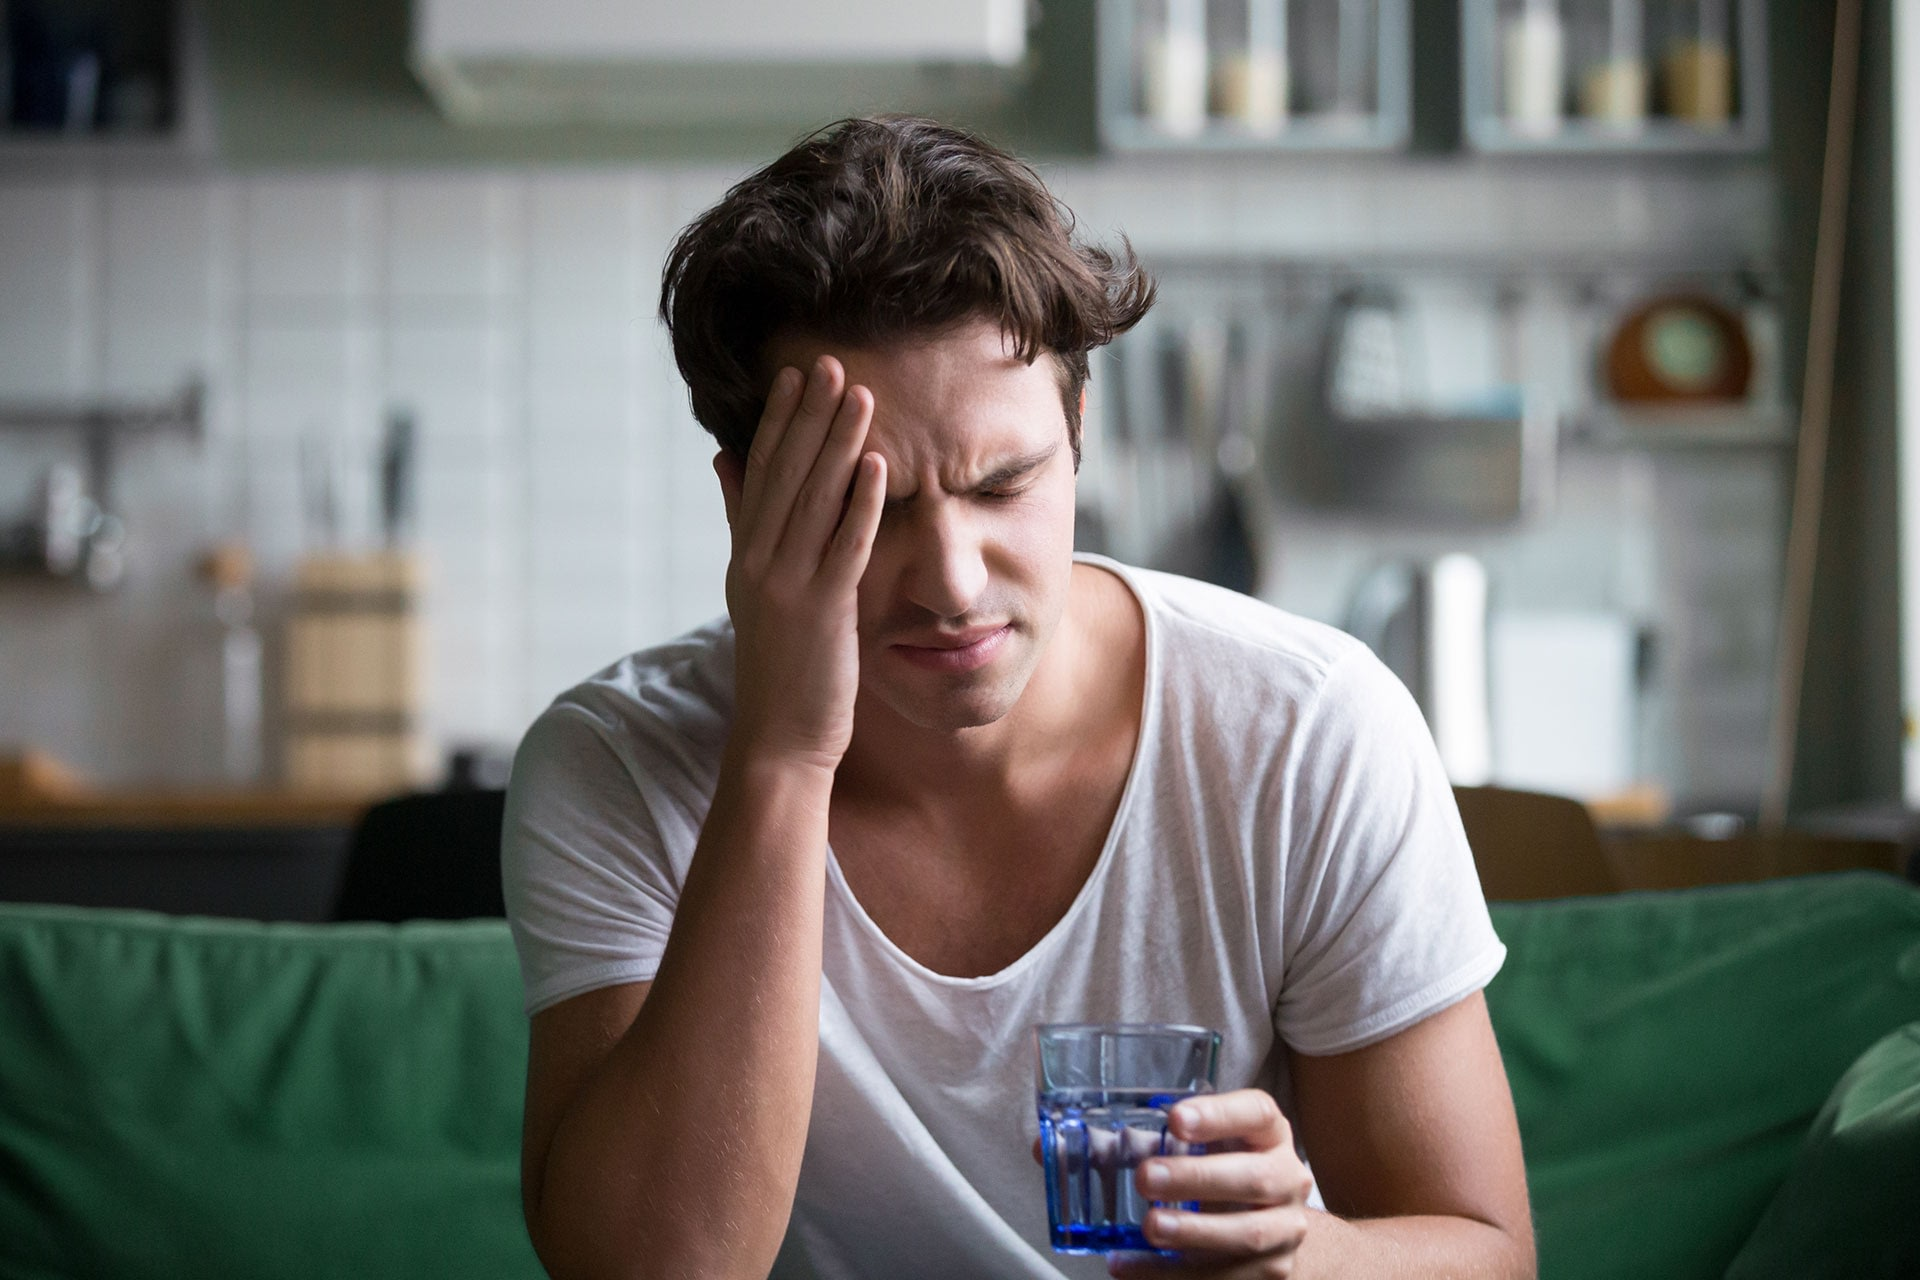 man with headache in need of migraine pain remedies